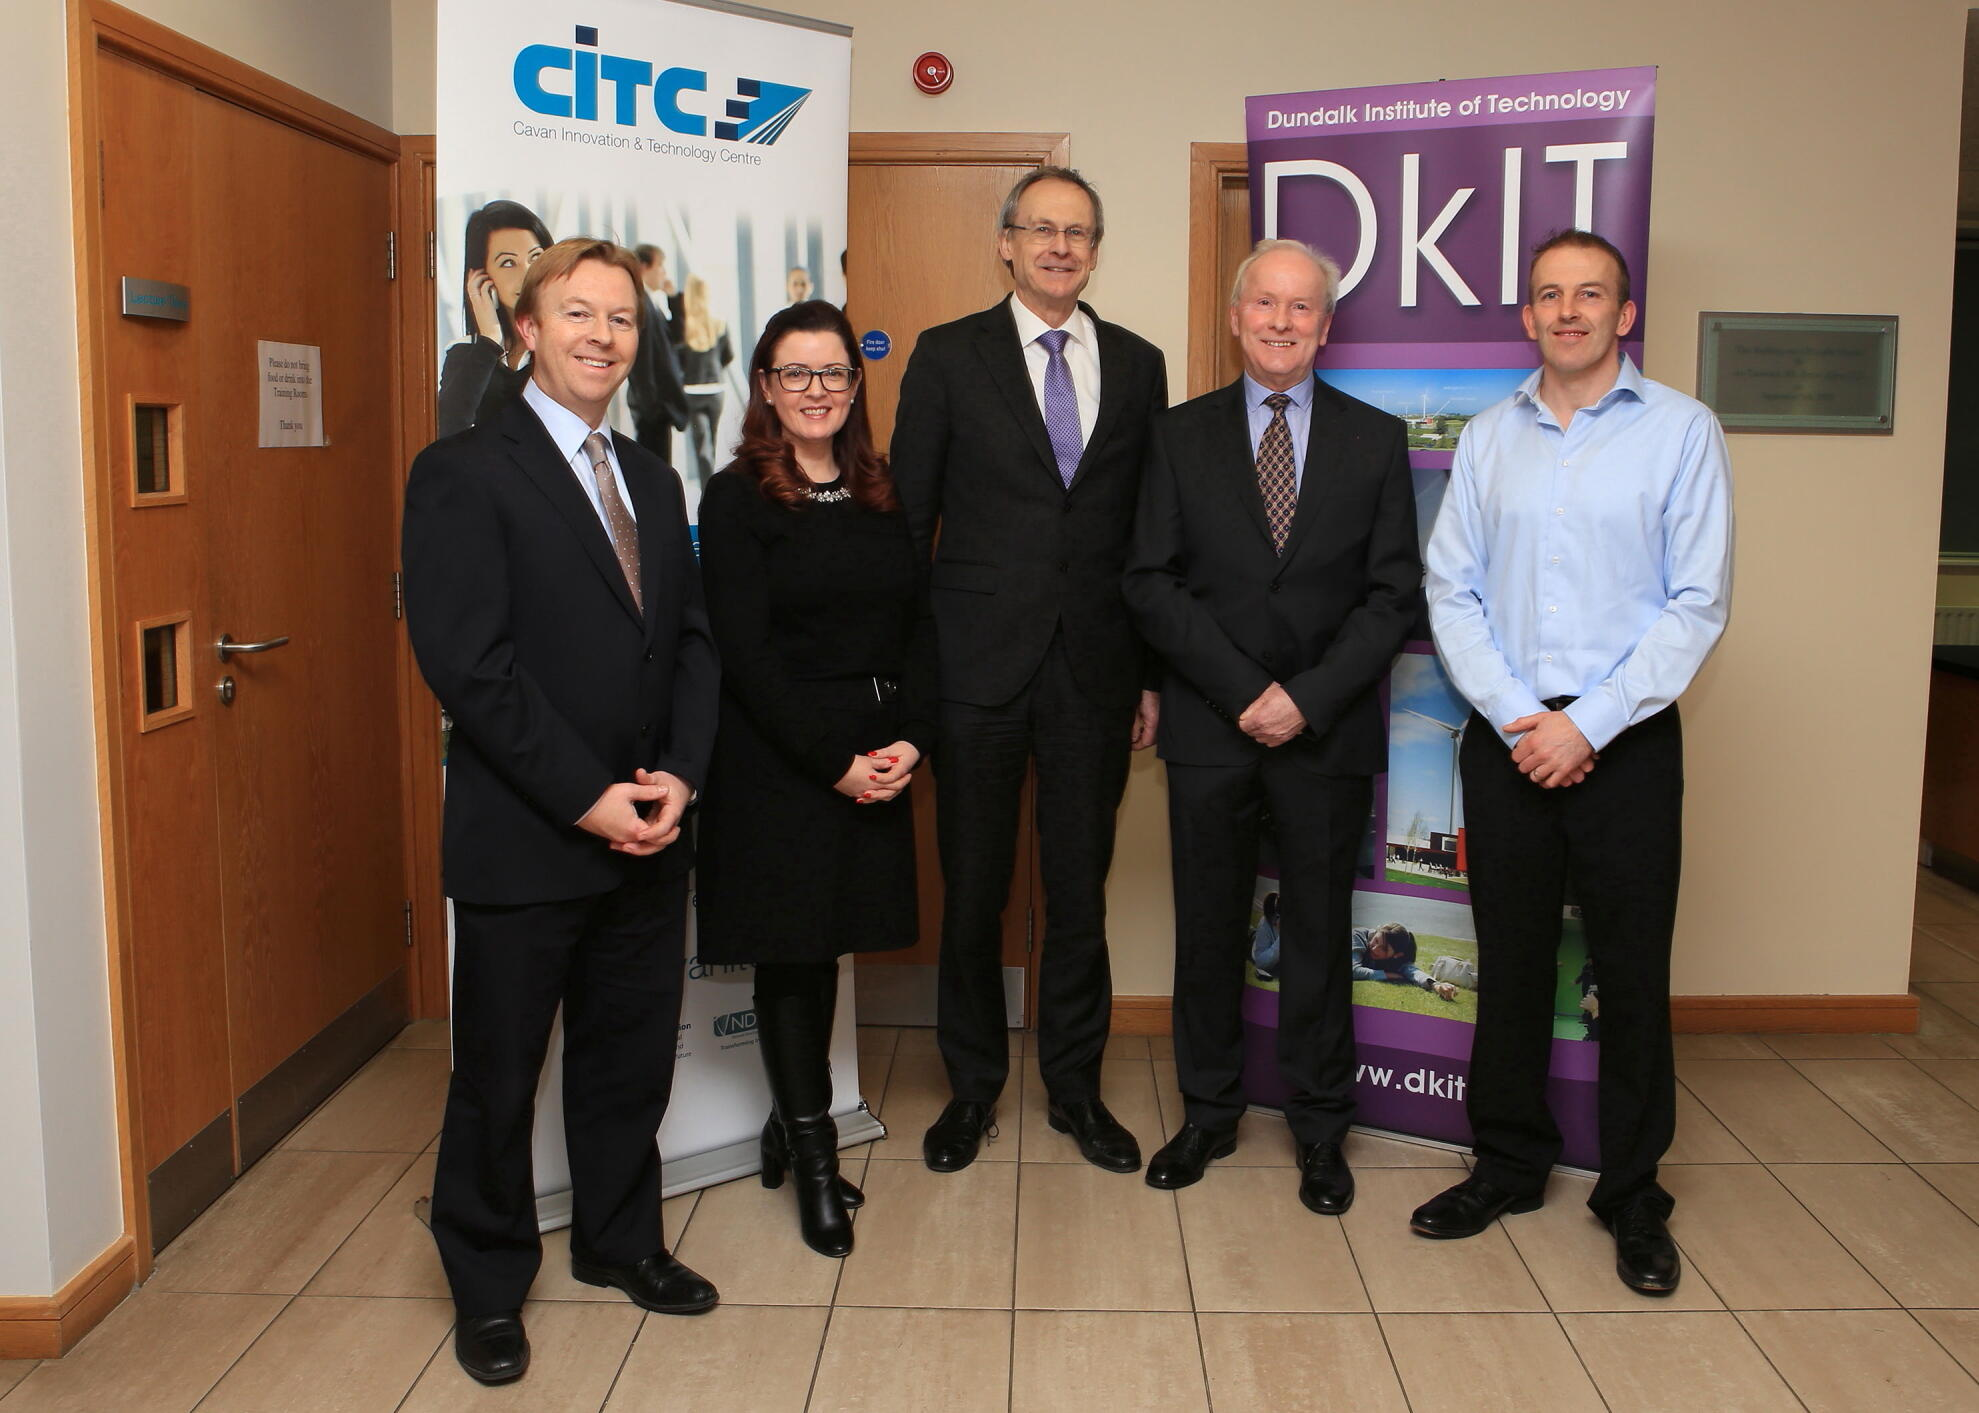 DkIT Launches New Data Analytics Course in Cavan Technology & Innovation Centre